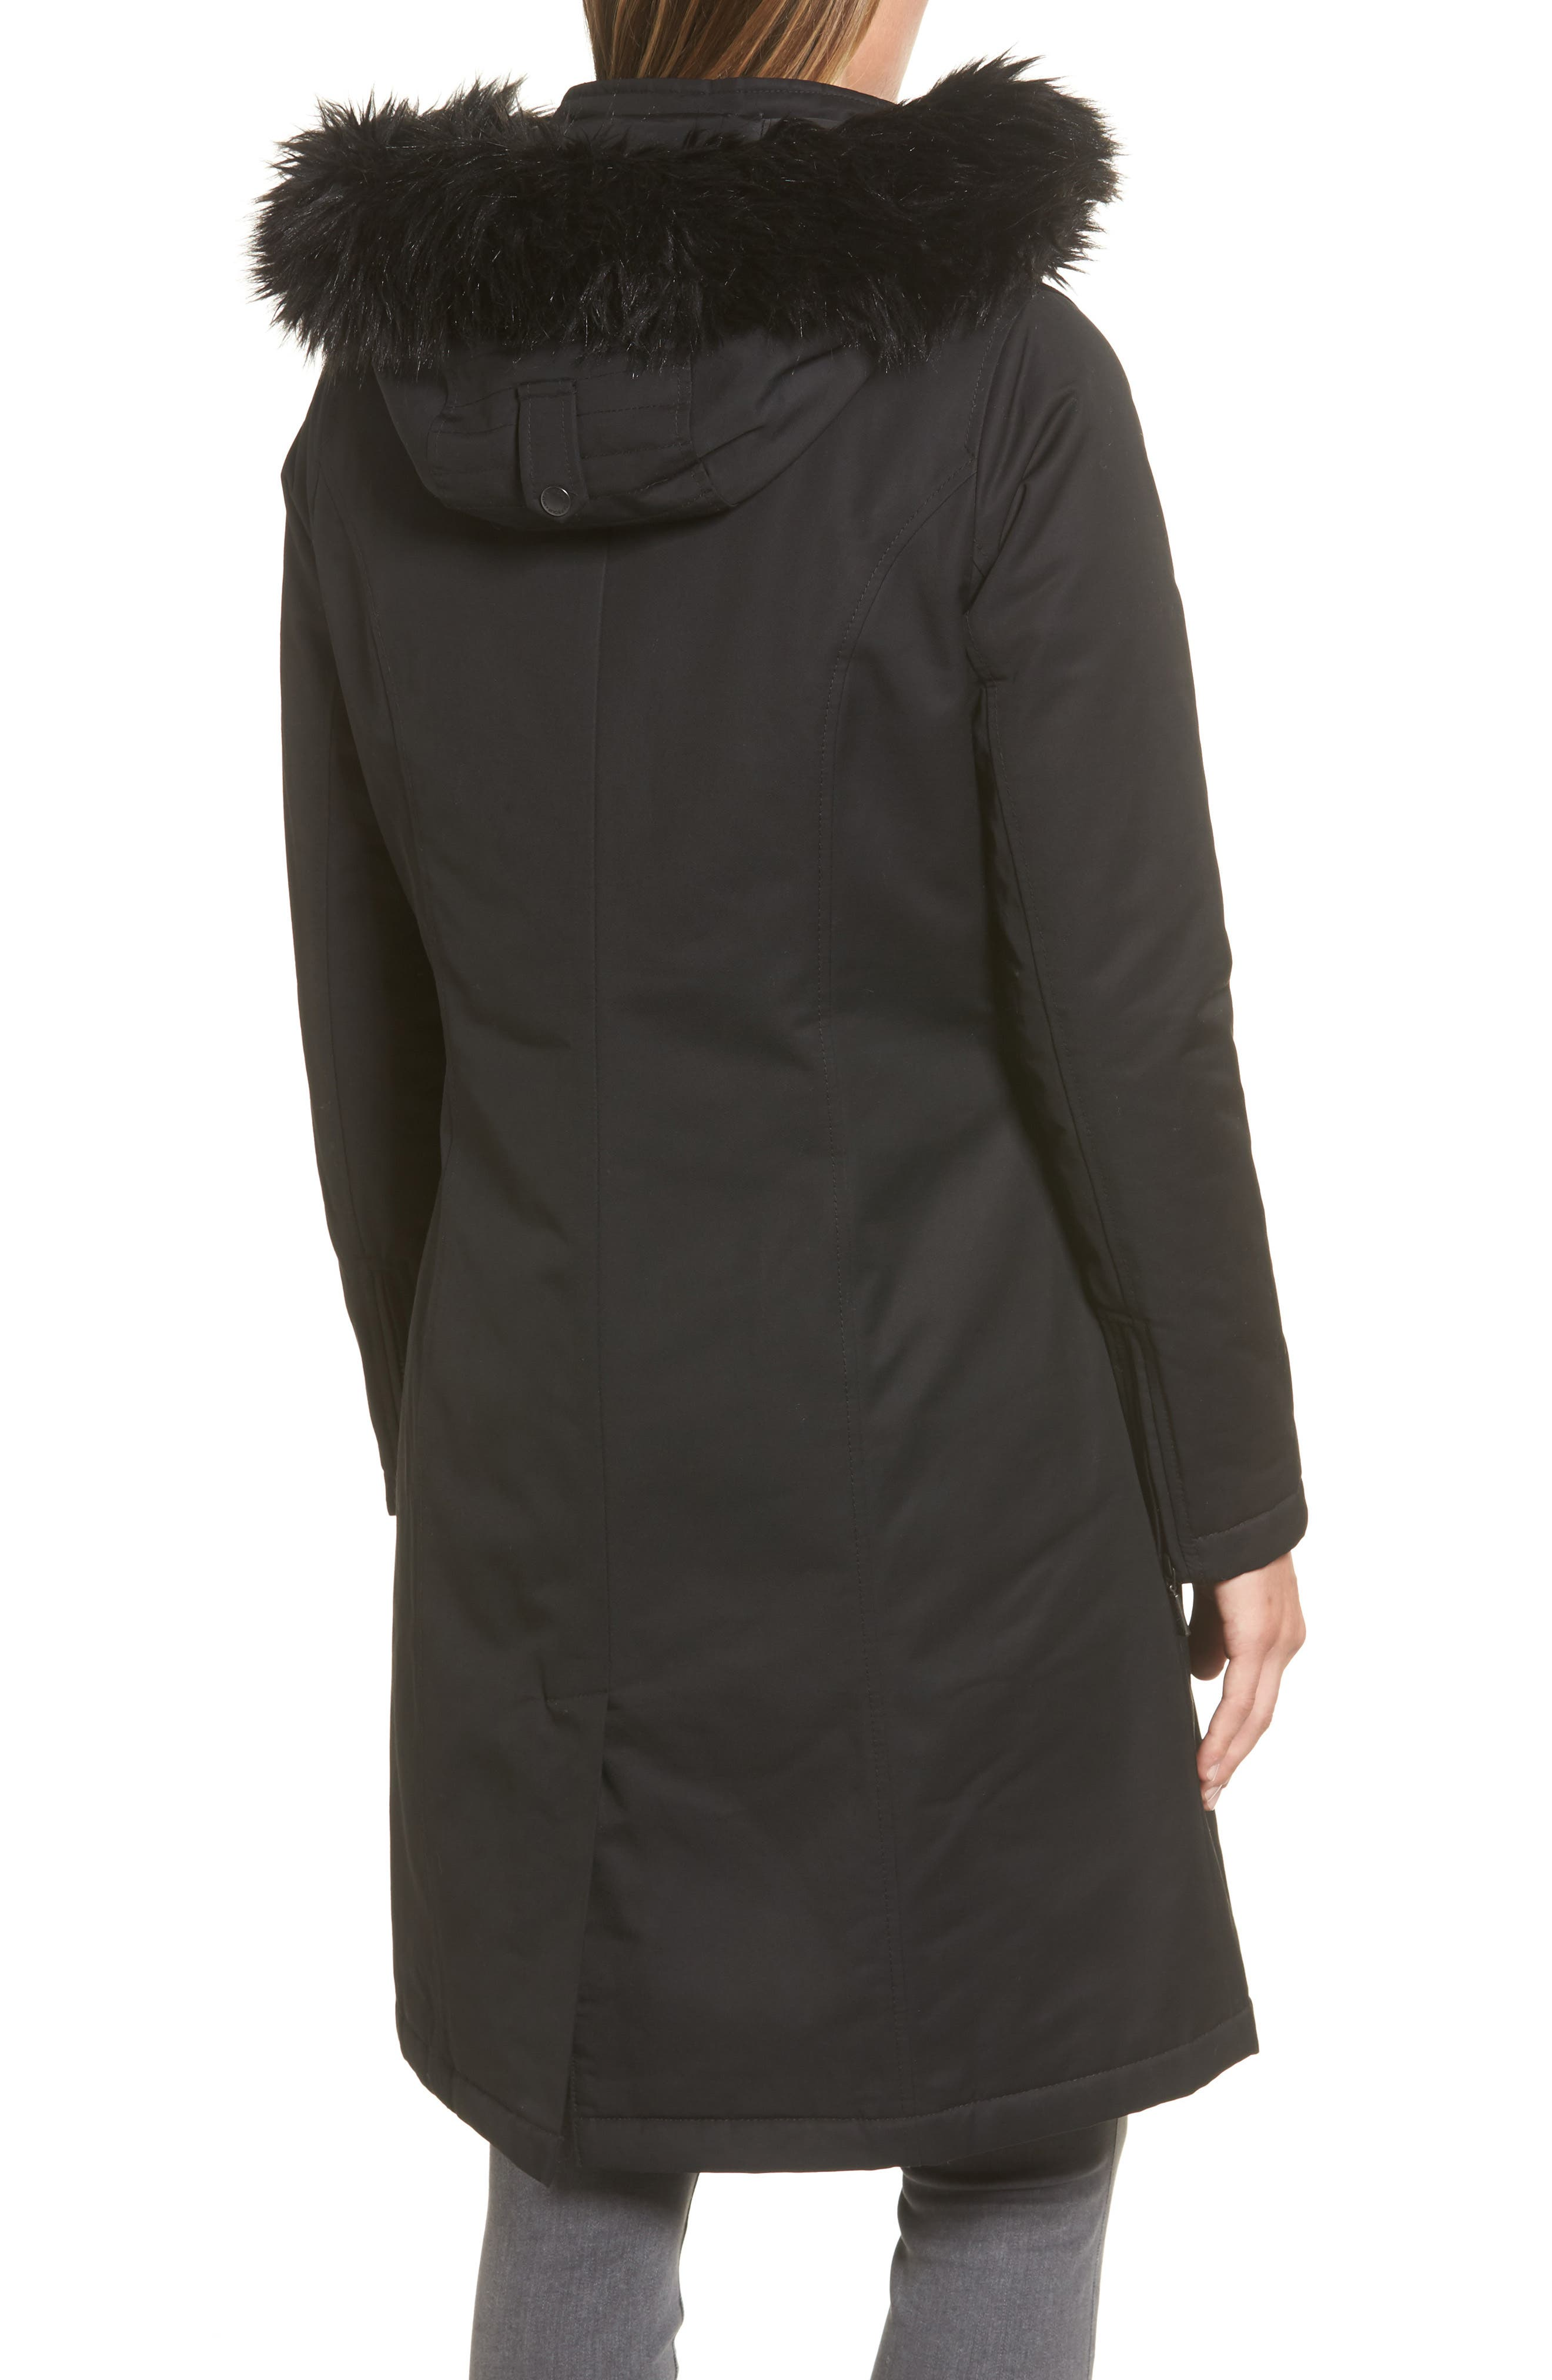 Mondello Hooded Water Resistant Jacket with Faux Fur Trim,                             Alternate thumbnail 2, color,                             001